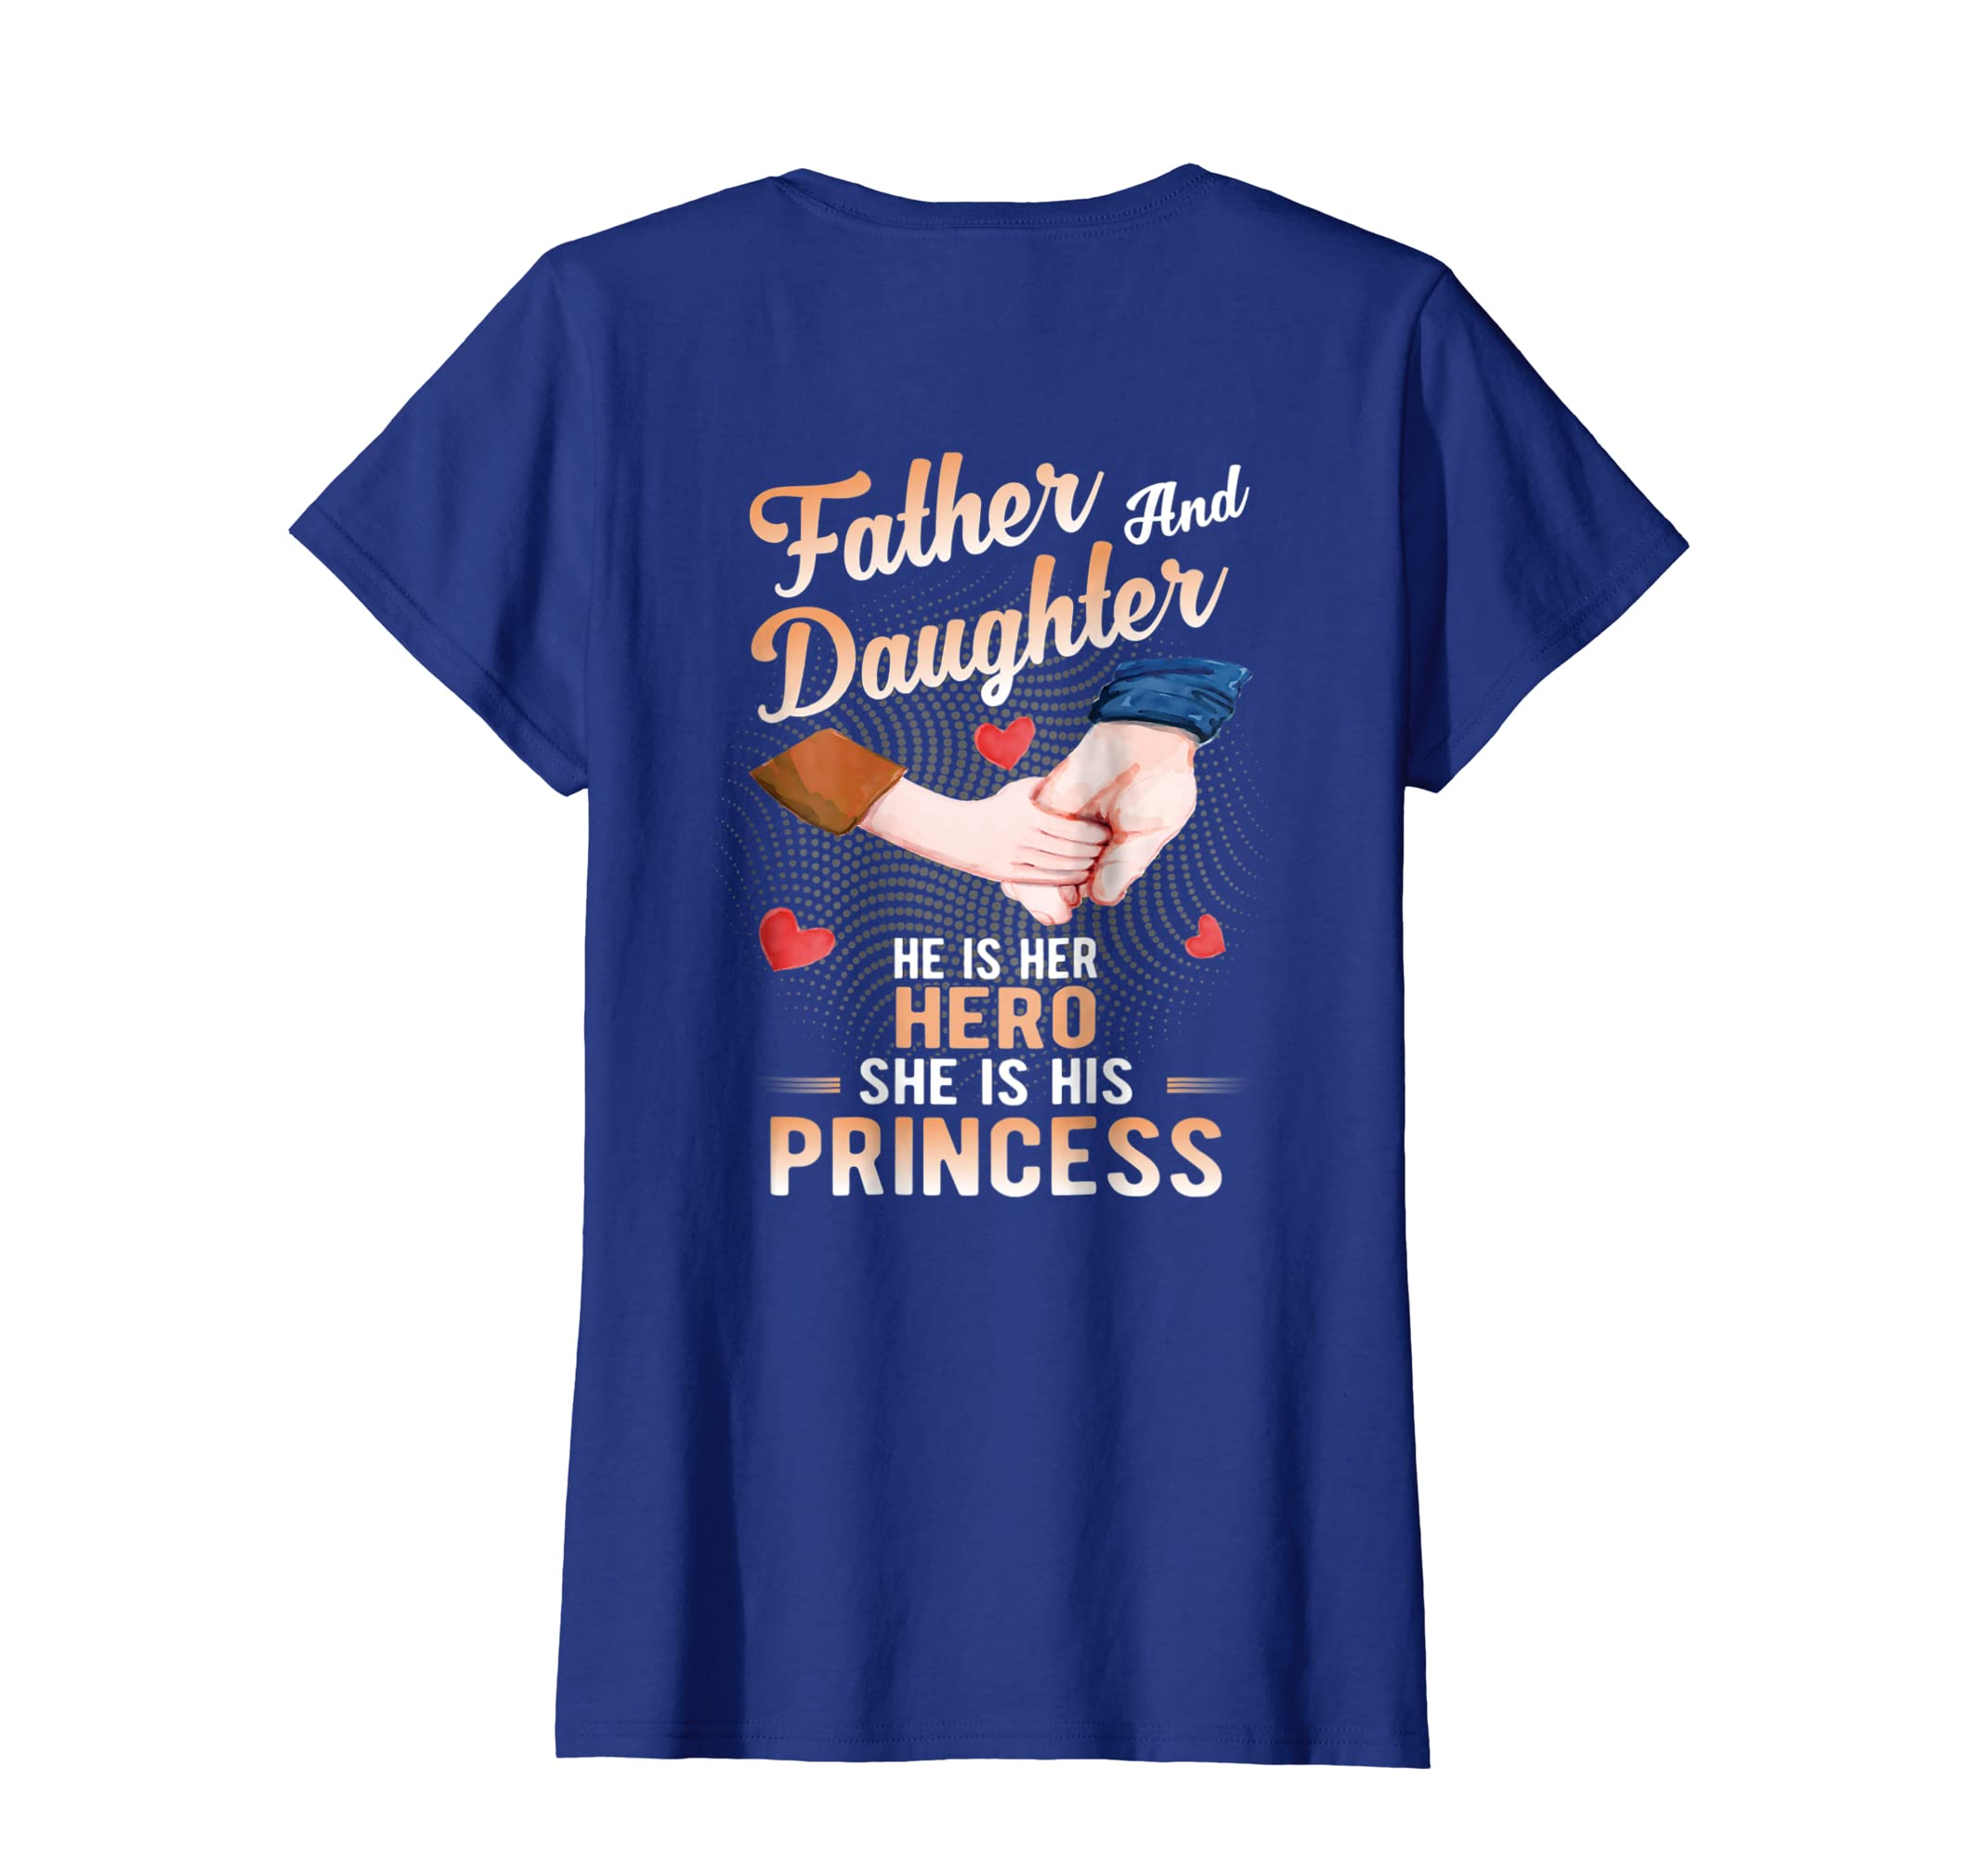 6d6dac41 Amazon.com: Matching Shirts For Father Daughter Hero Princess: Clothing